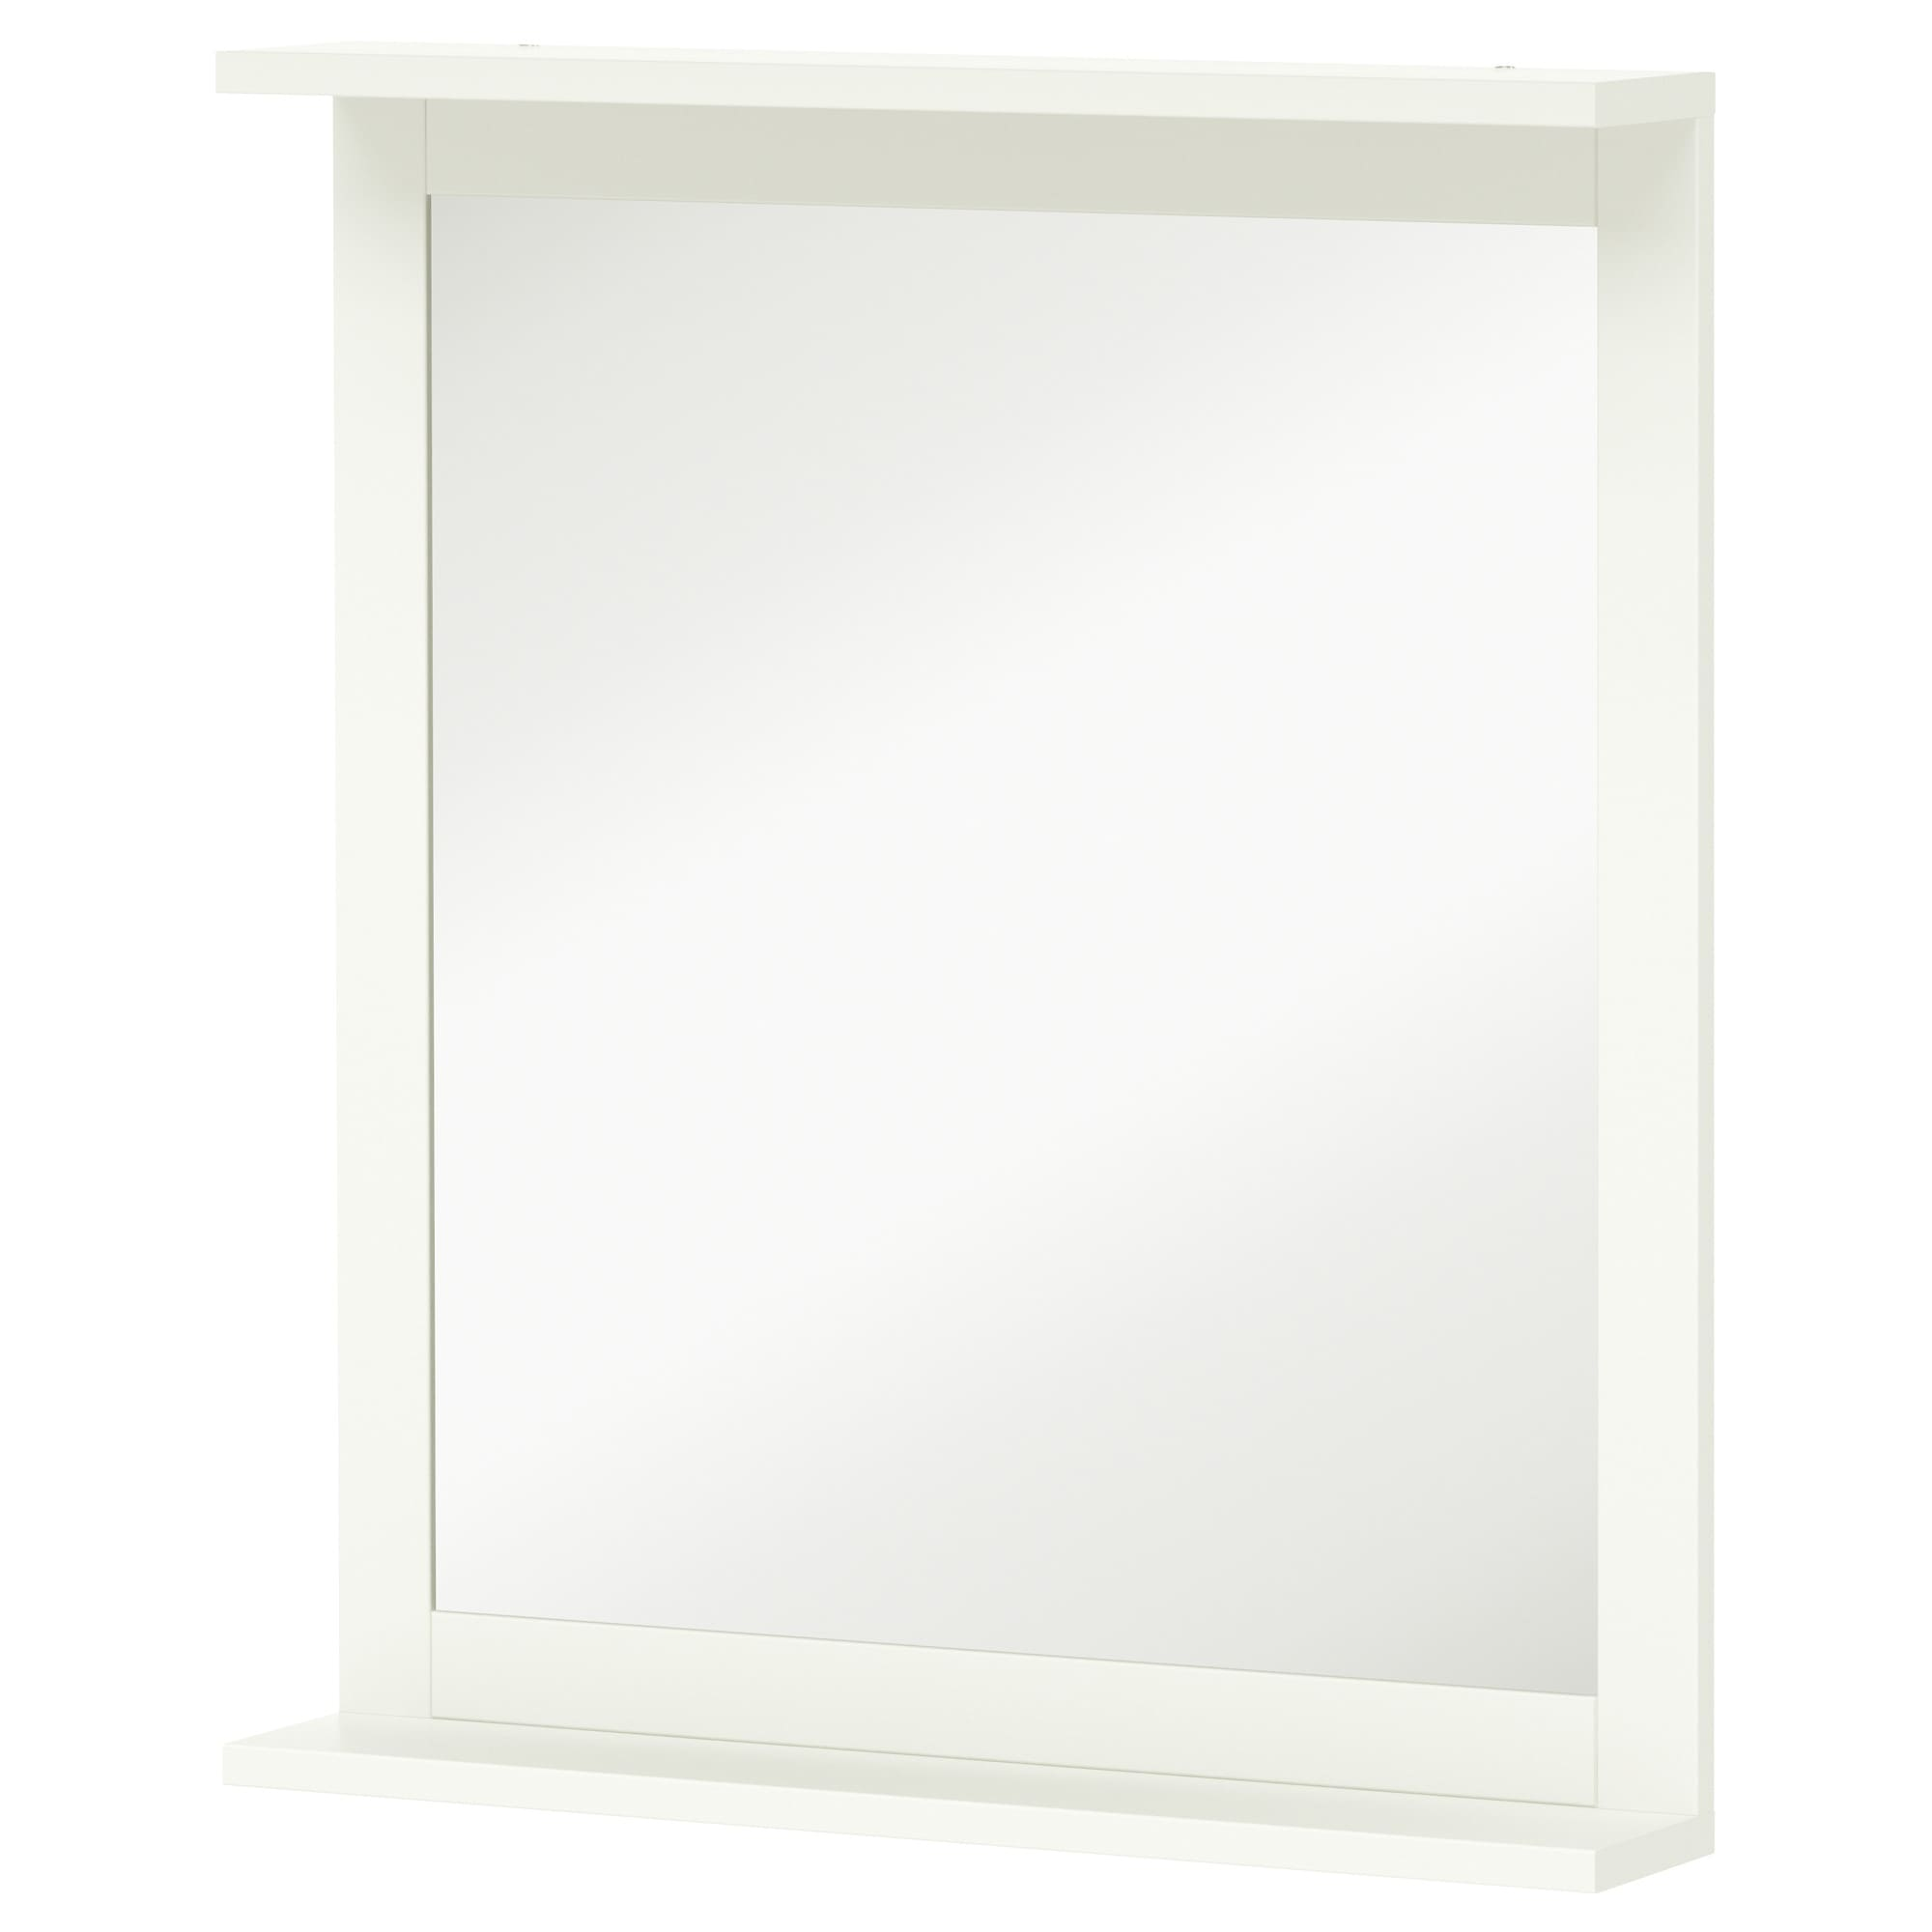 SILVERN Mirror With Shelf White Width 22 Height 25 1 8